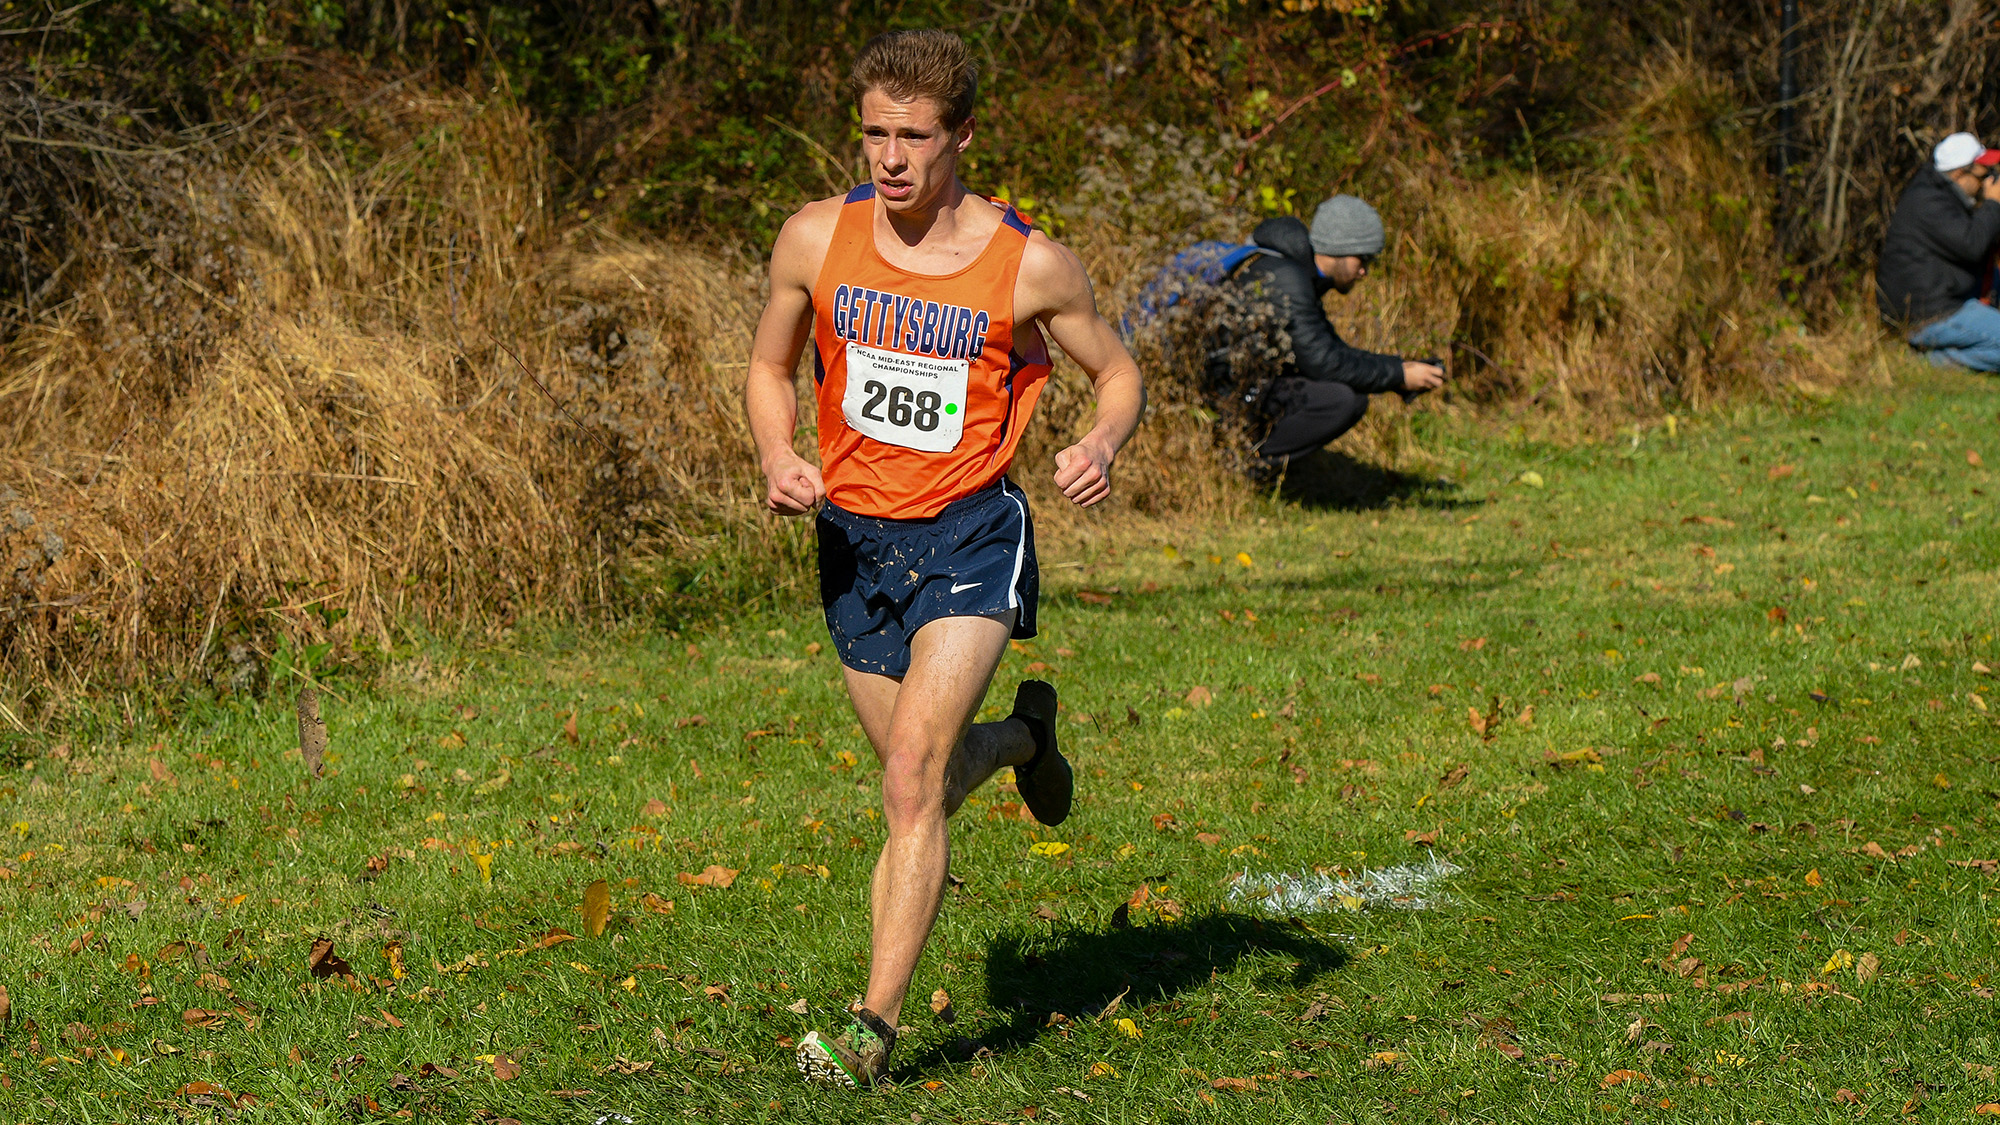 Senior Mike Miller raced to a 54th place finish (Photo courtesy of David Sinclair, Gettysburg College Athletics)